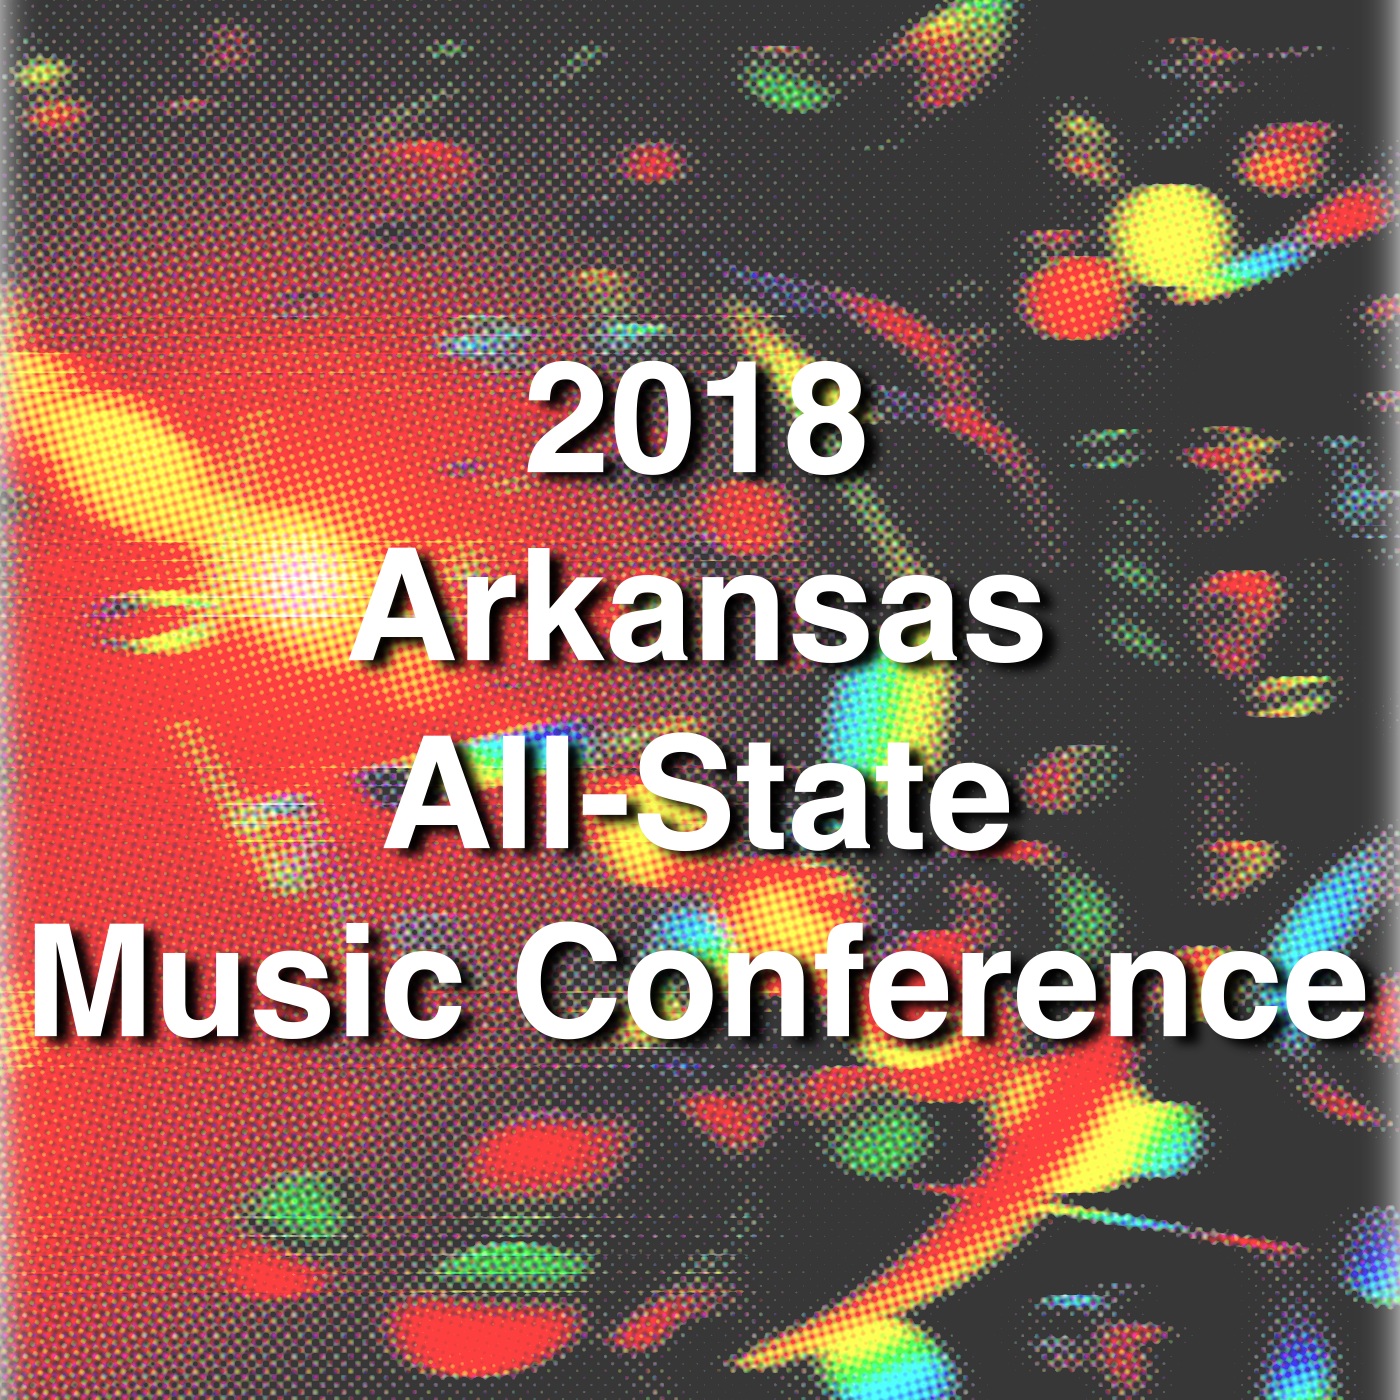 2018 Arkansas All-State Music Conference